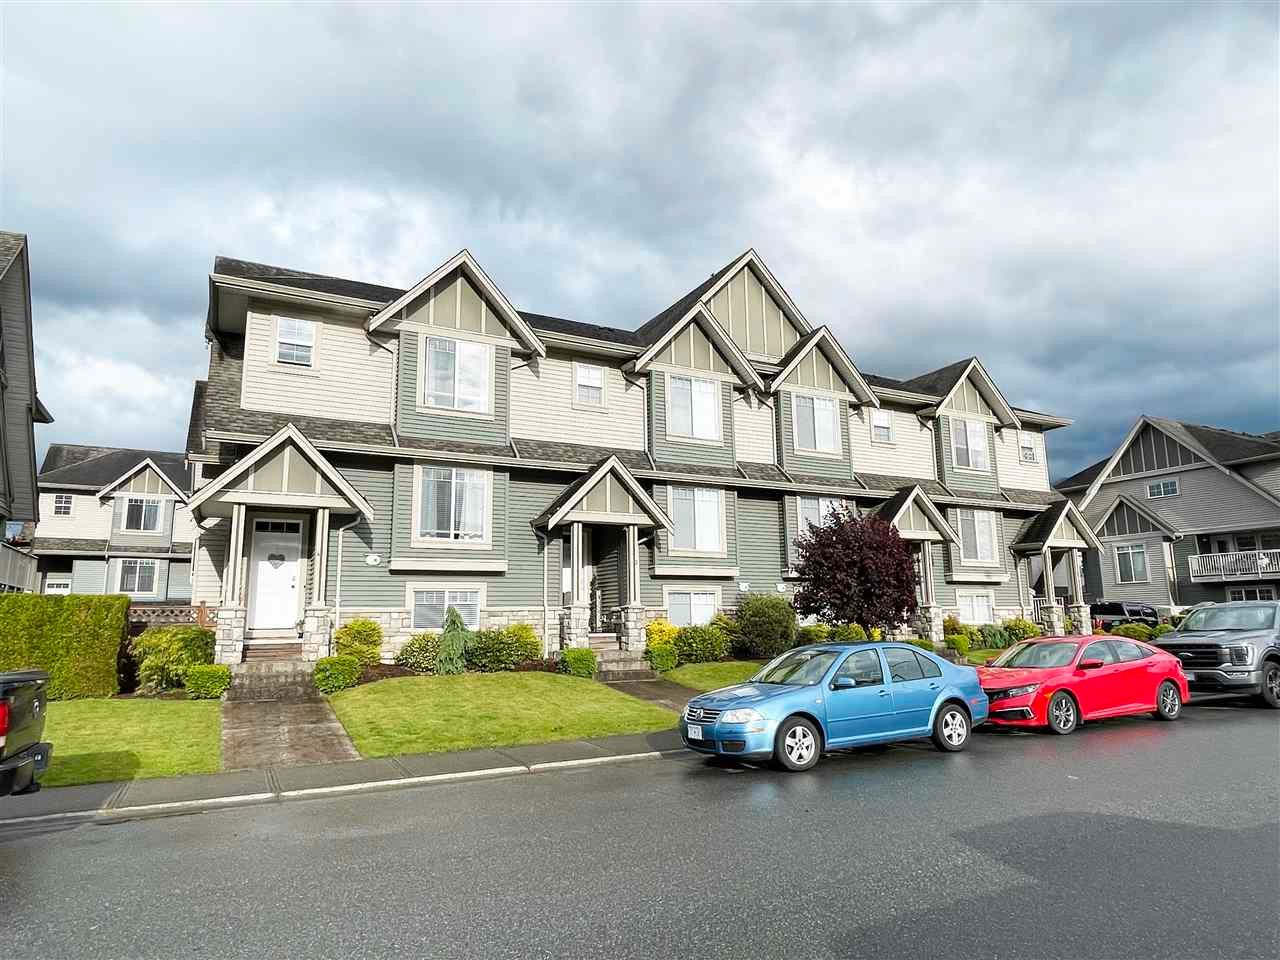 """Main Photo: 3 6498 SOUTHDOWNE Place in Chilliwack: Sardis East Vedder Rd Townhouse for sale in """"Village Green"""" (Sardis)  : MLS®# R2588764"""